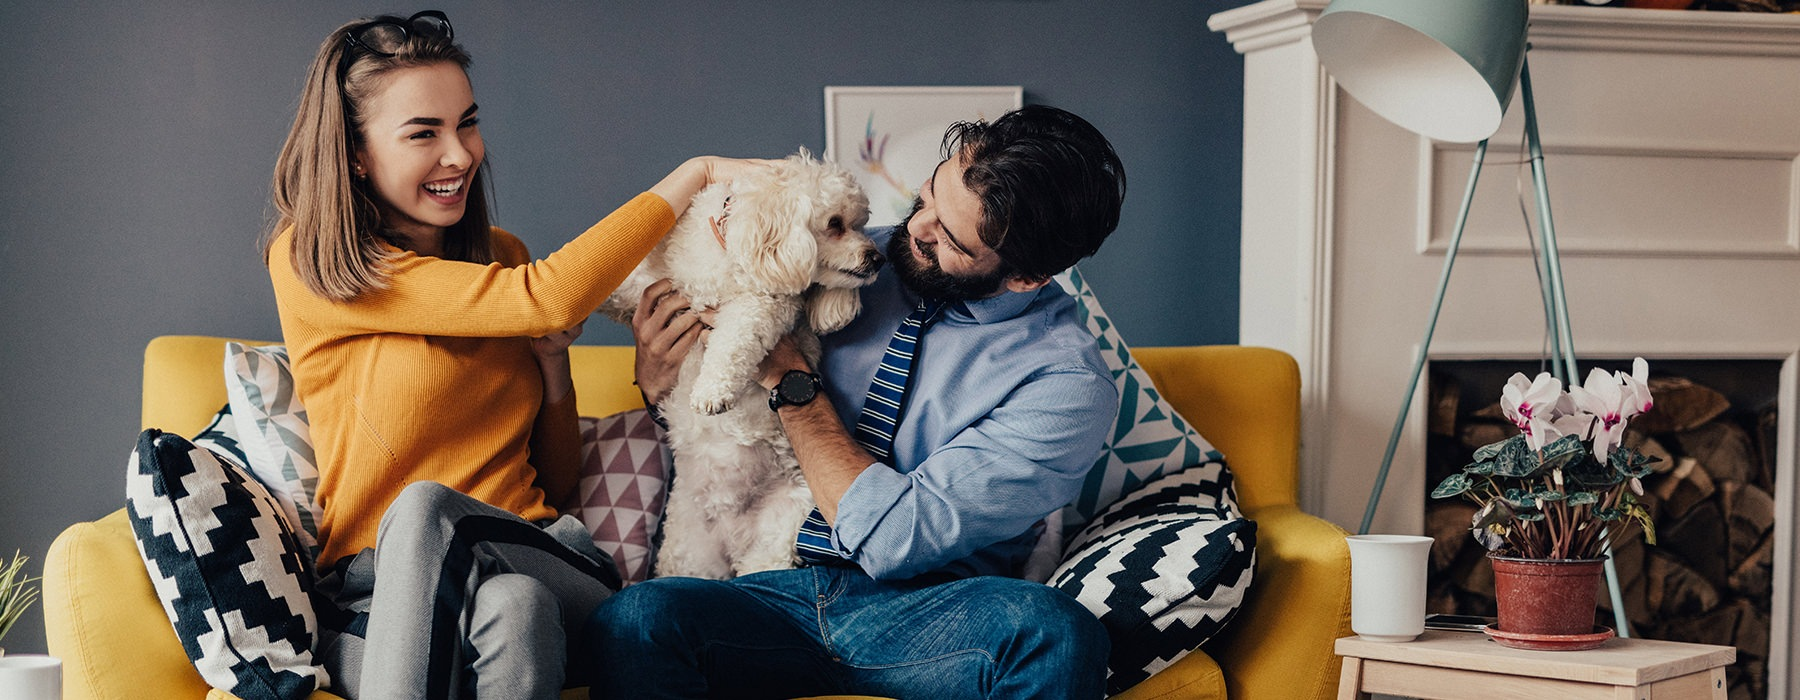 couple on the couch with dog